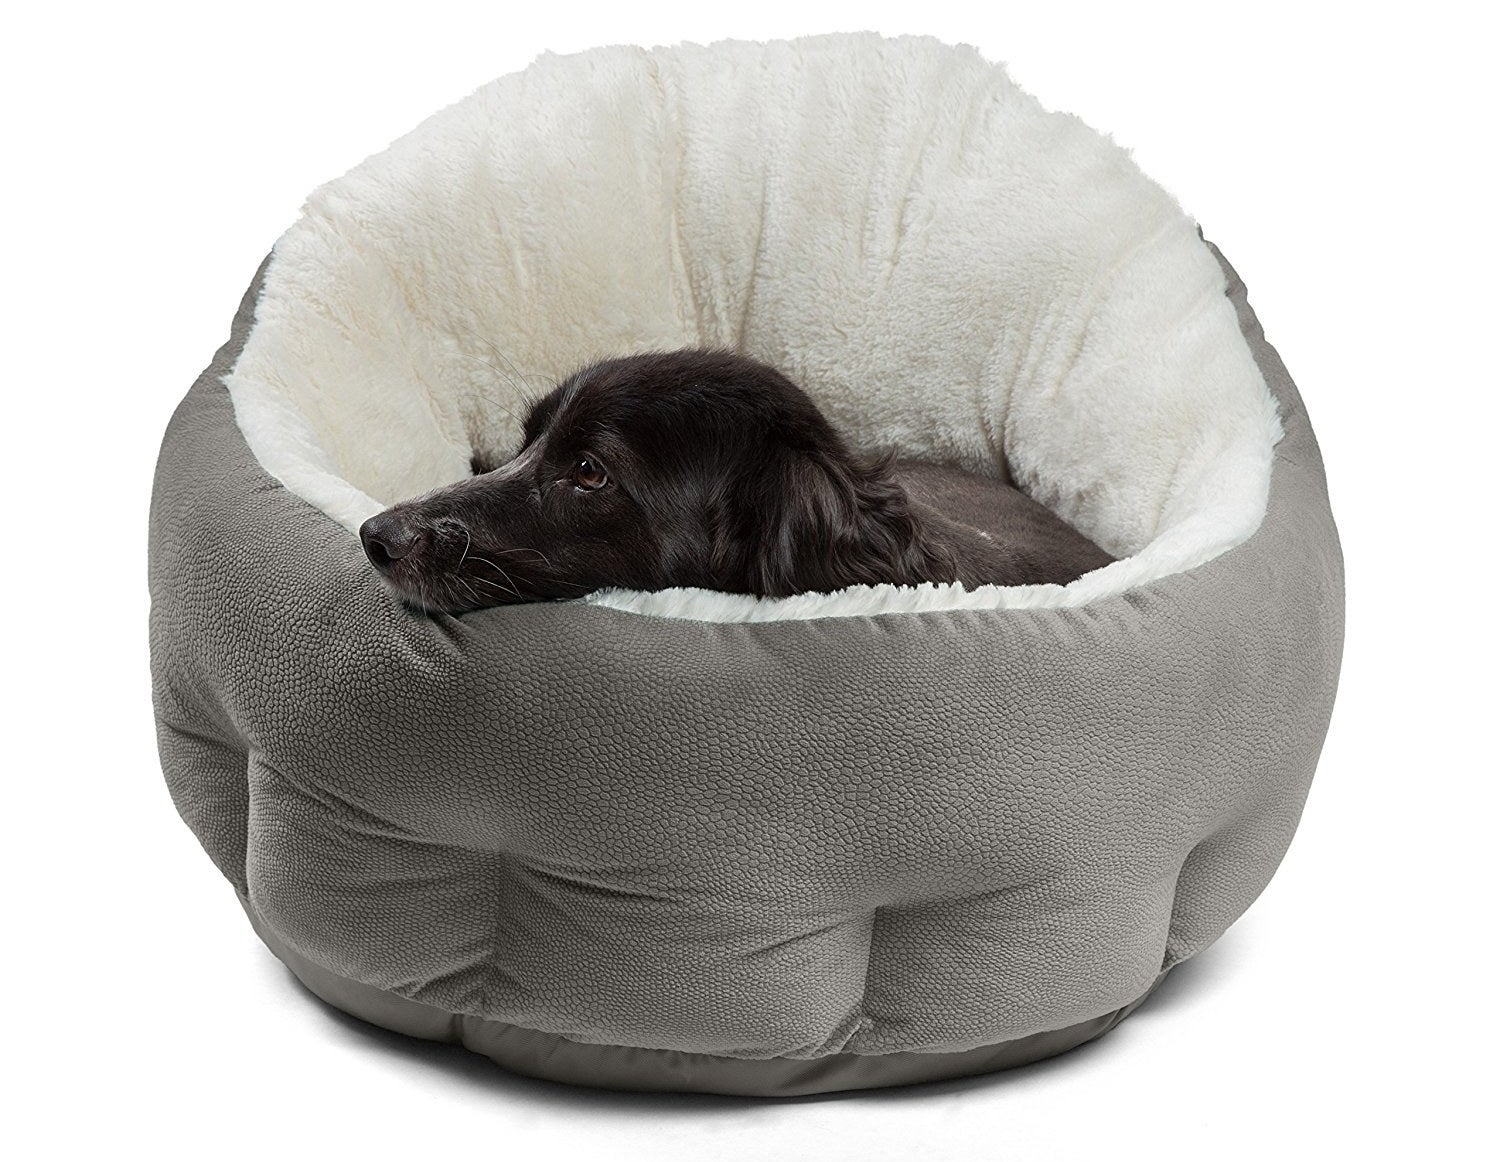 A medium sized dog fully inside the high-wall pet bed